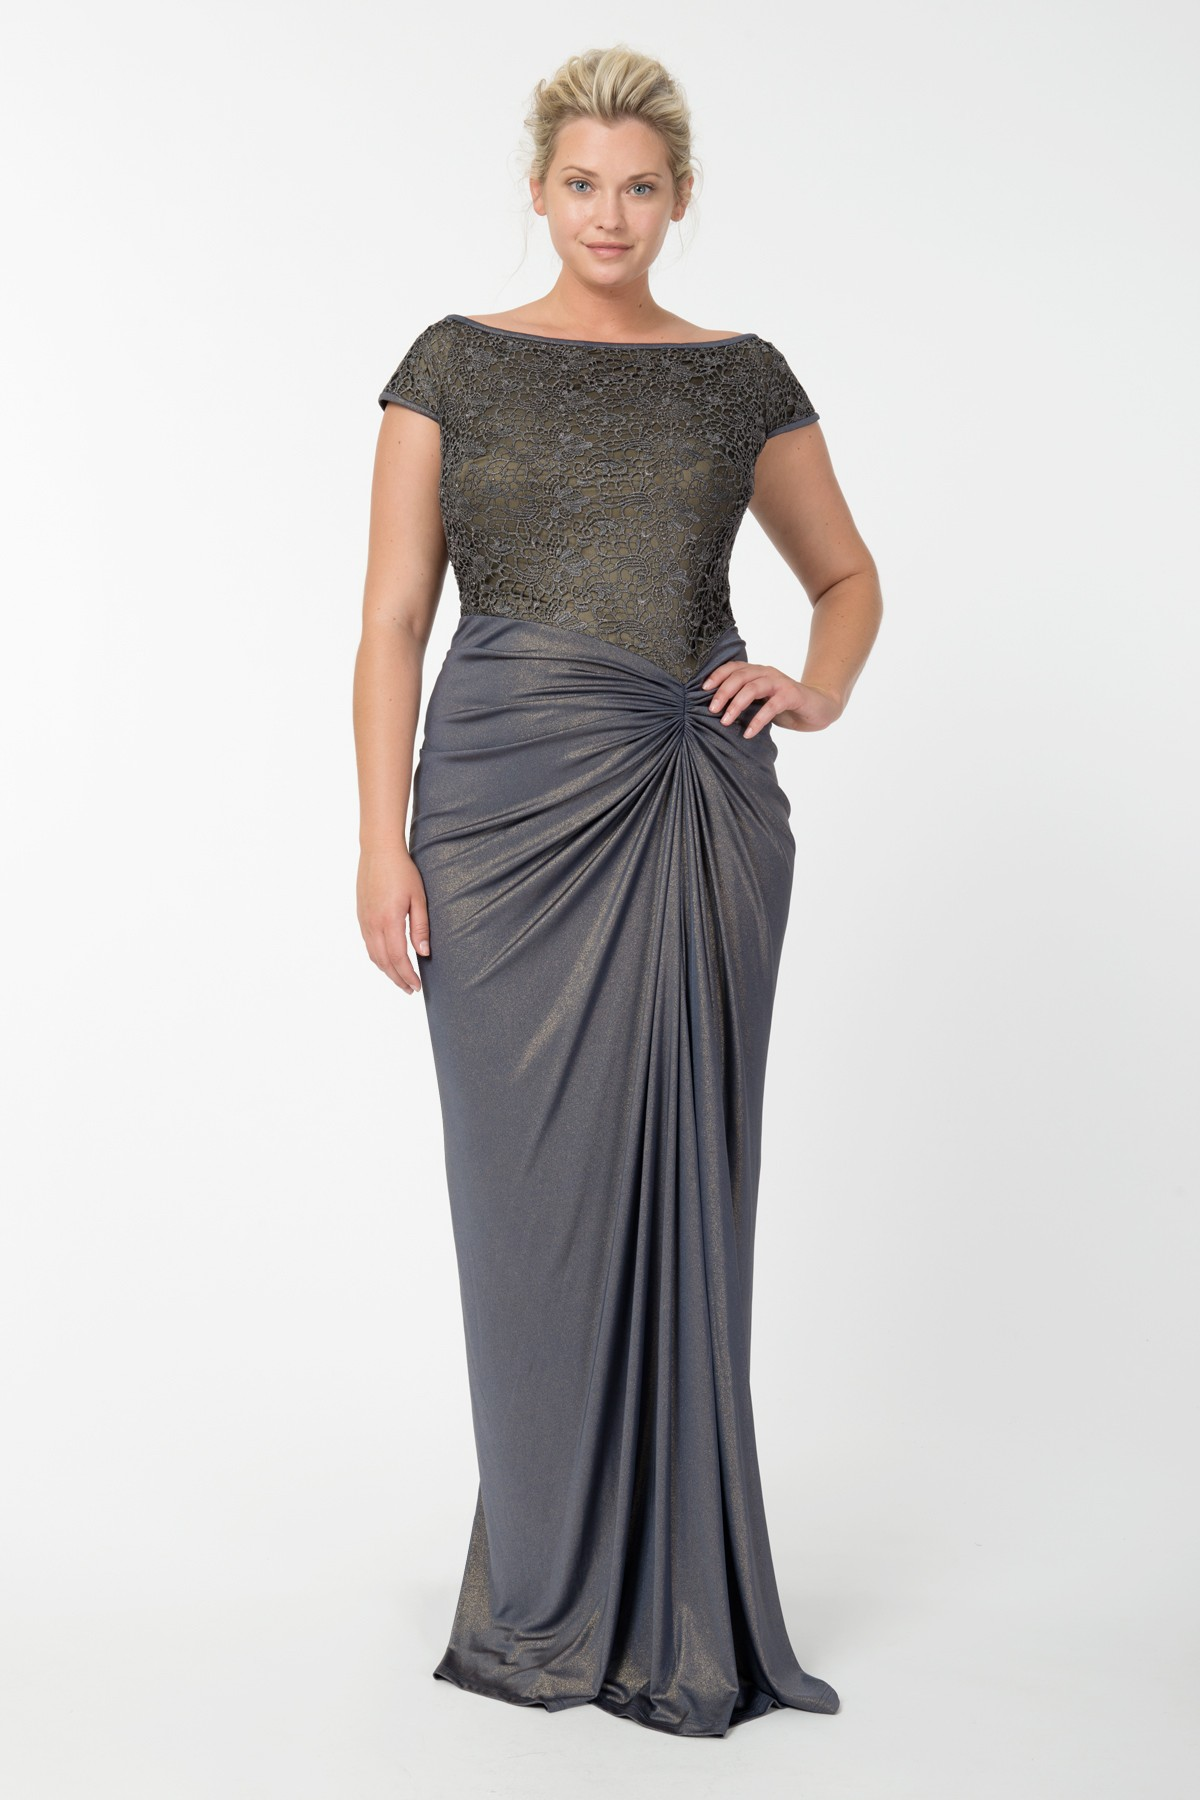 PLUS SIZE EVENING DRESSES - Kapres Molene